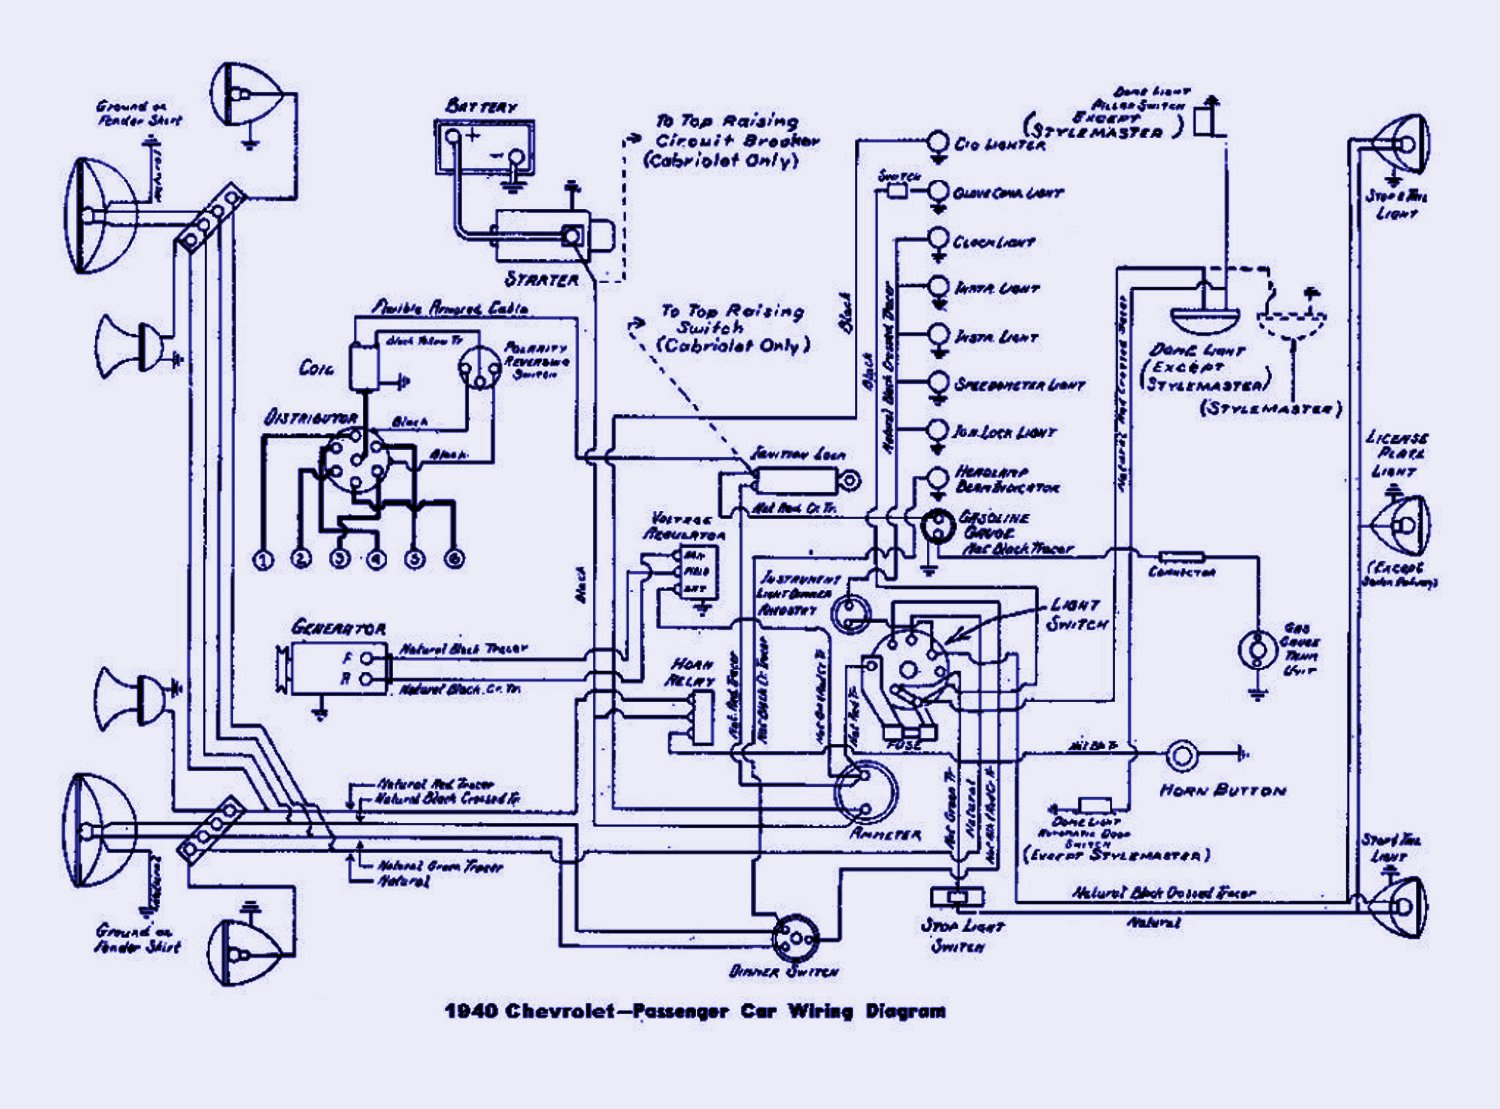 1940 Chevrolet Passenger Electrical Wiring Diagram | Auto